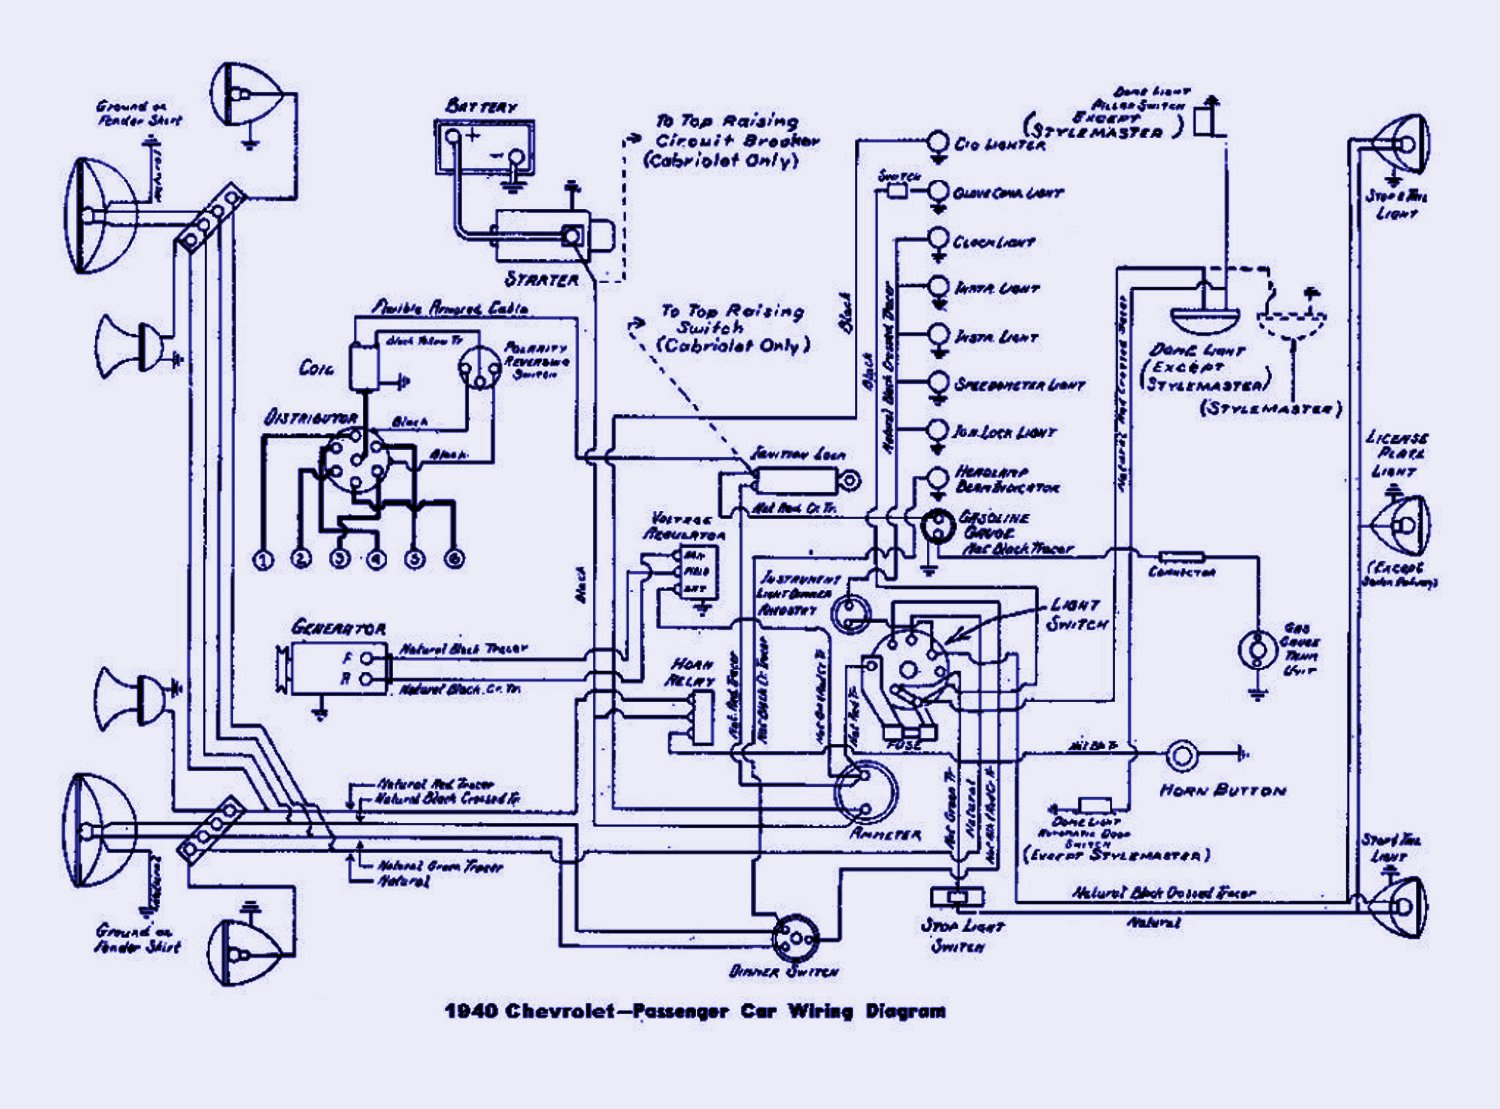 1940 Chevrolet Passenger Electrical Wiring Diagram | Auto